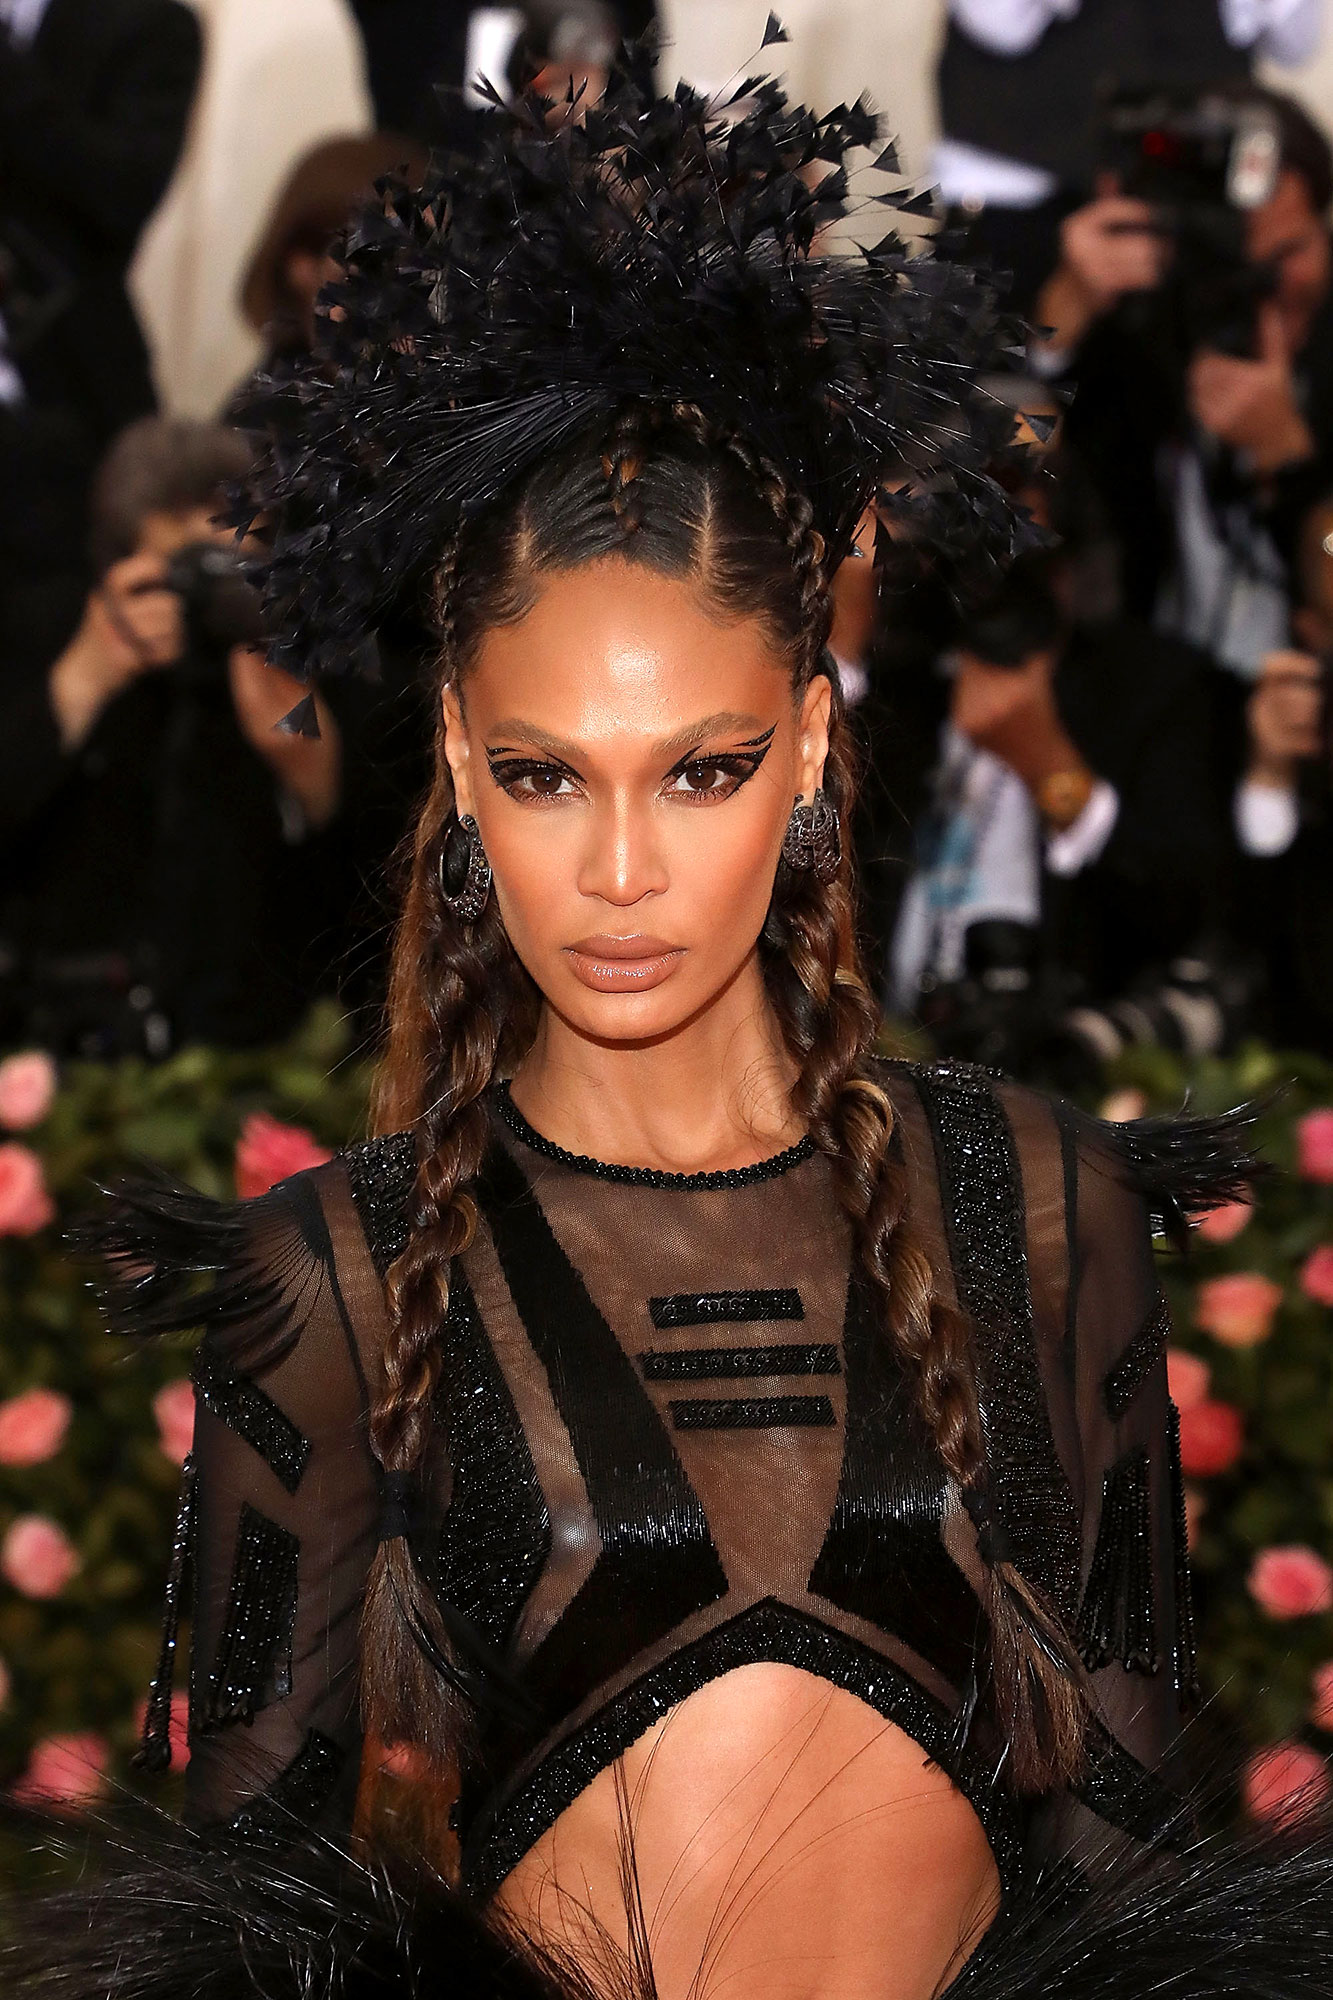 Joan Smalls Fresh Cat Eye - A new spin on the bold Cleopatra look, the A-list model attended the 2019 Met Gala with multi-tiered graphic cat eye stamped with small crystals courtesy of Patrick Ta.